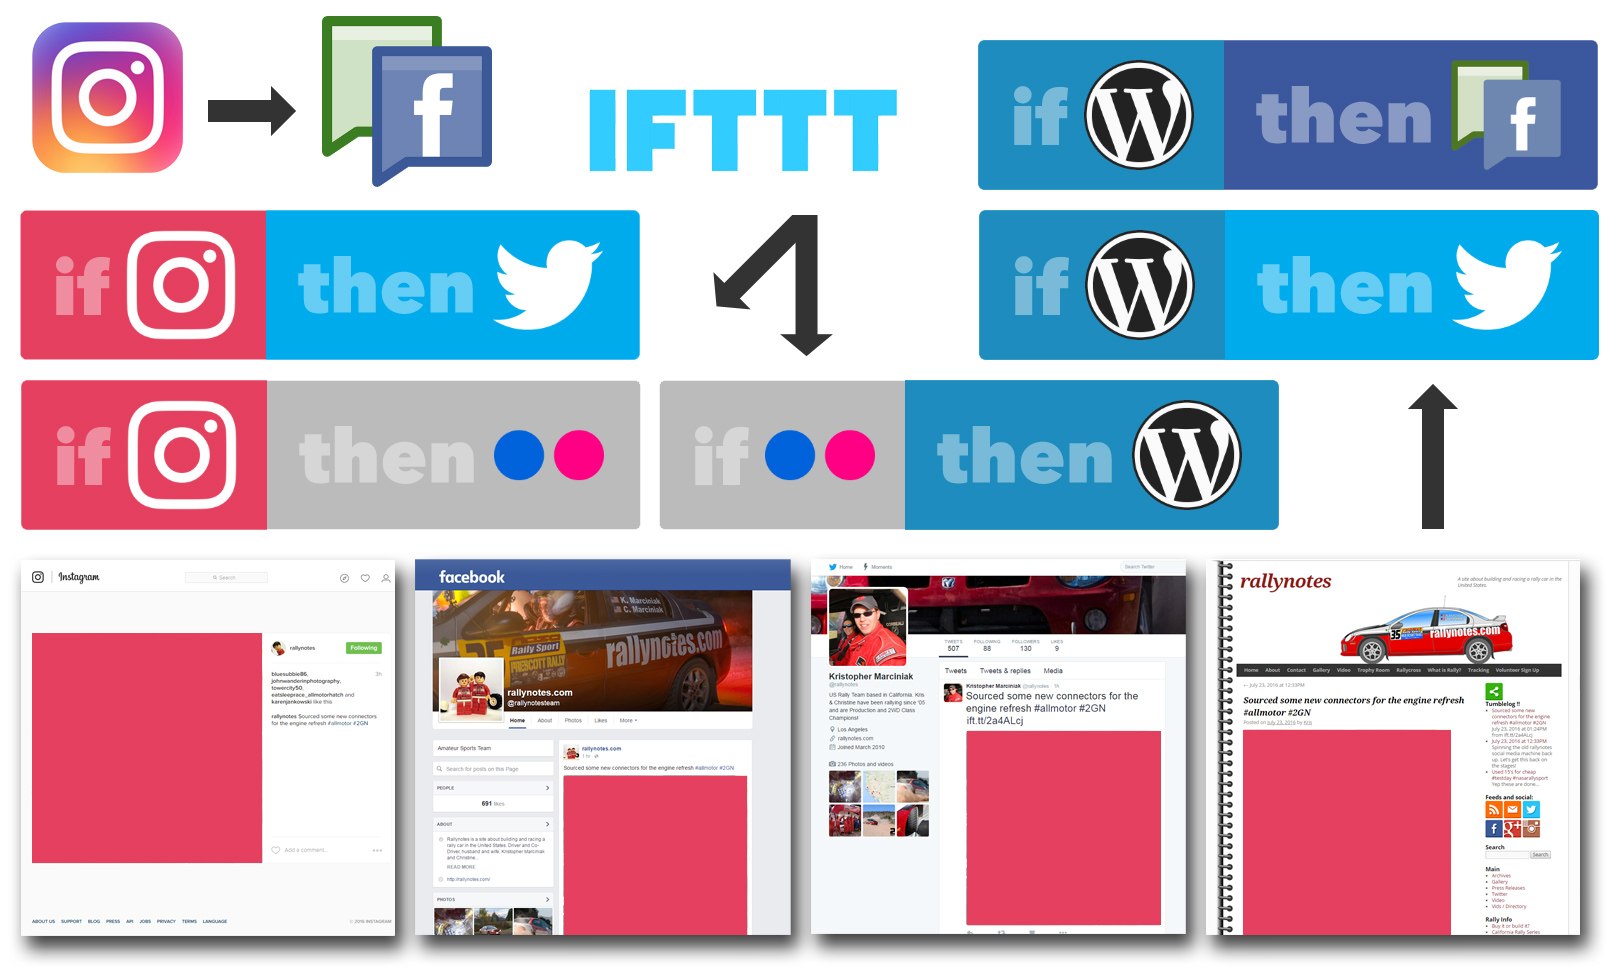 Rallynotes A Site About Building And Racing Rally Car In The Dodge Neon Srt 4 Wiring Trigger All Things Social Media With Ifttt